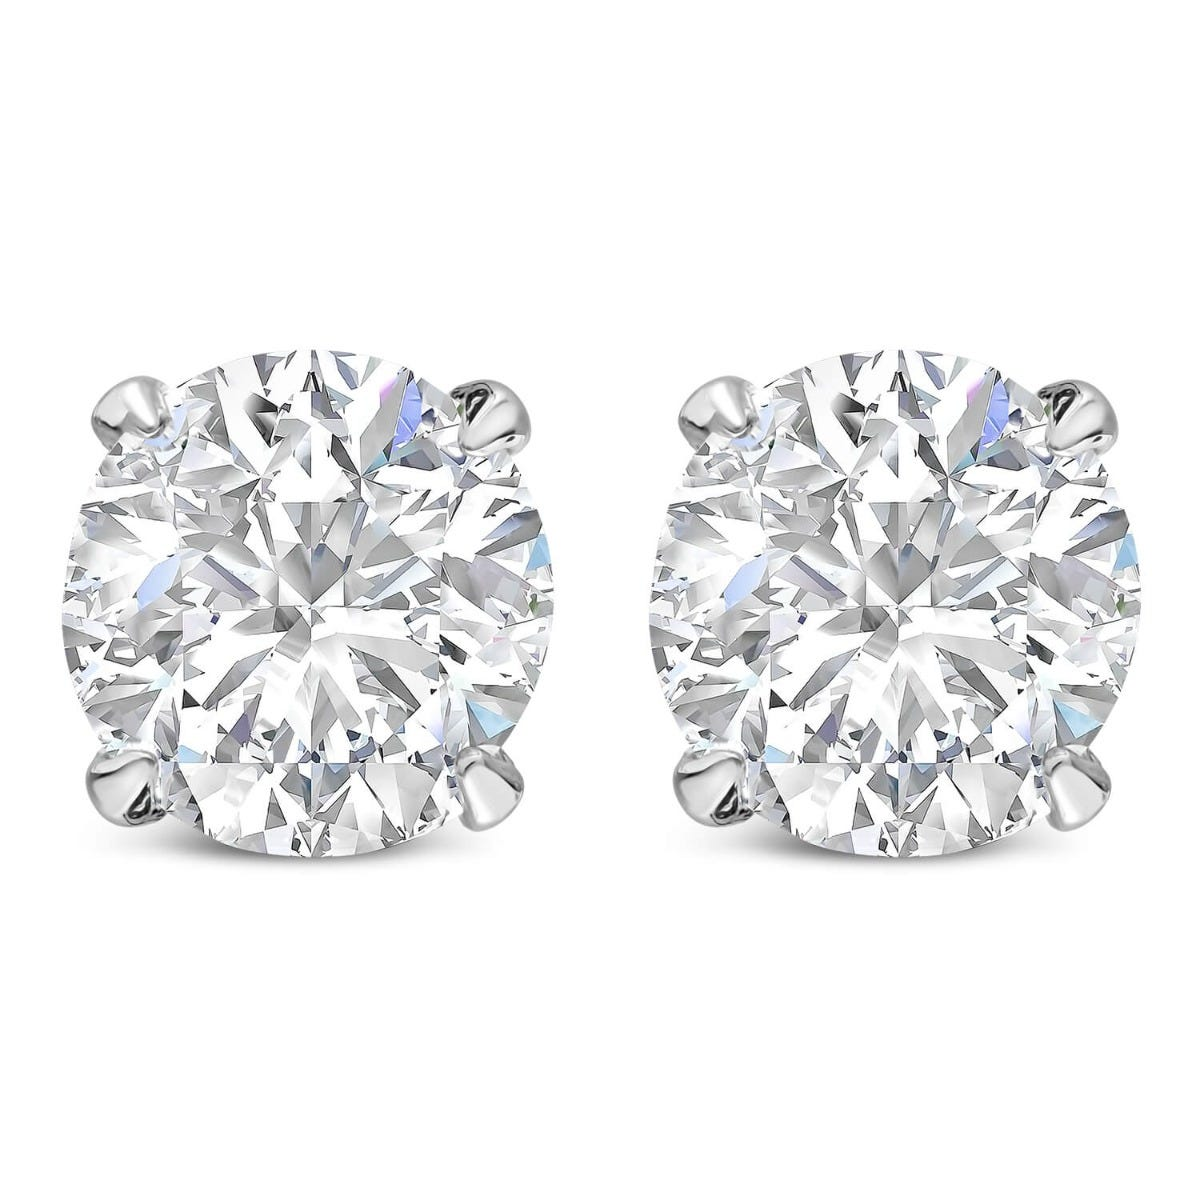 CARAT* London 9ct White Gold 5.25mm Brilliant Cut 4-Prong Stud Earrings